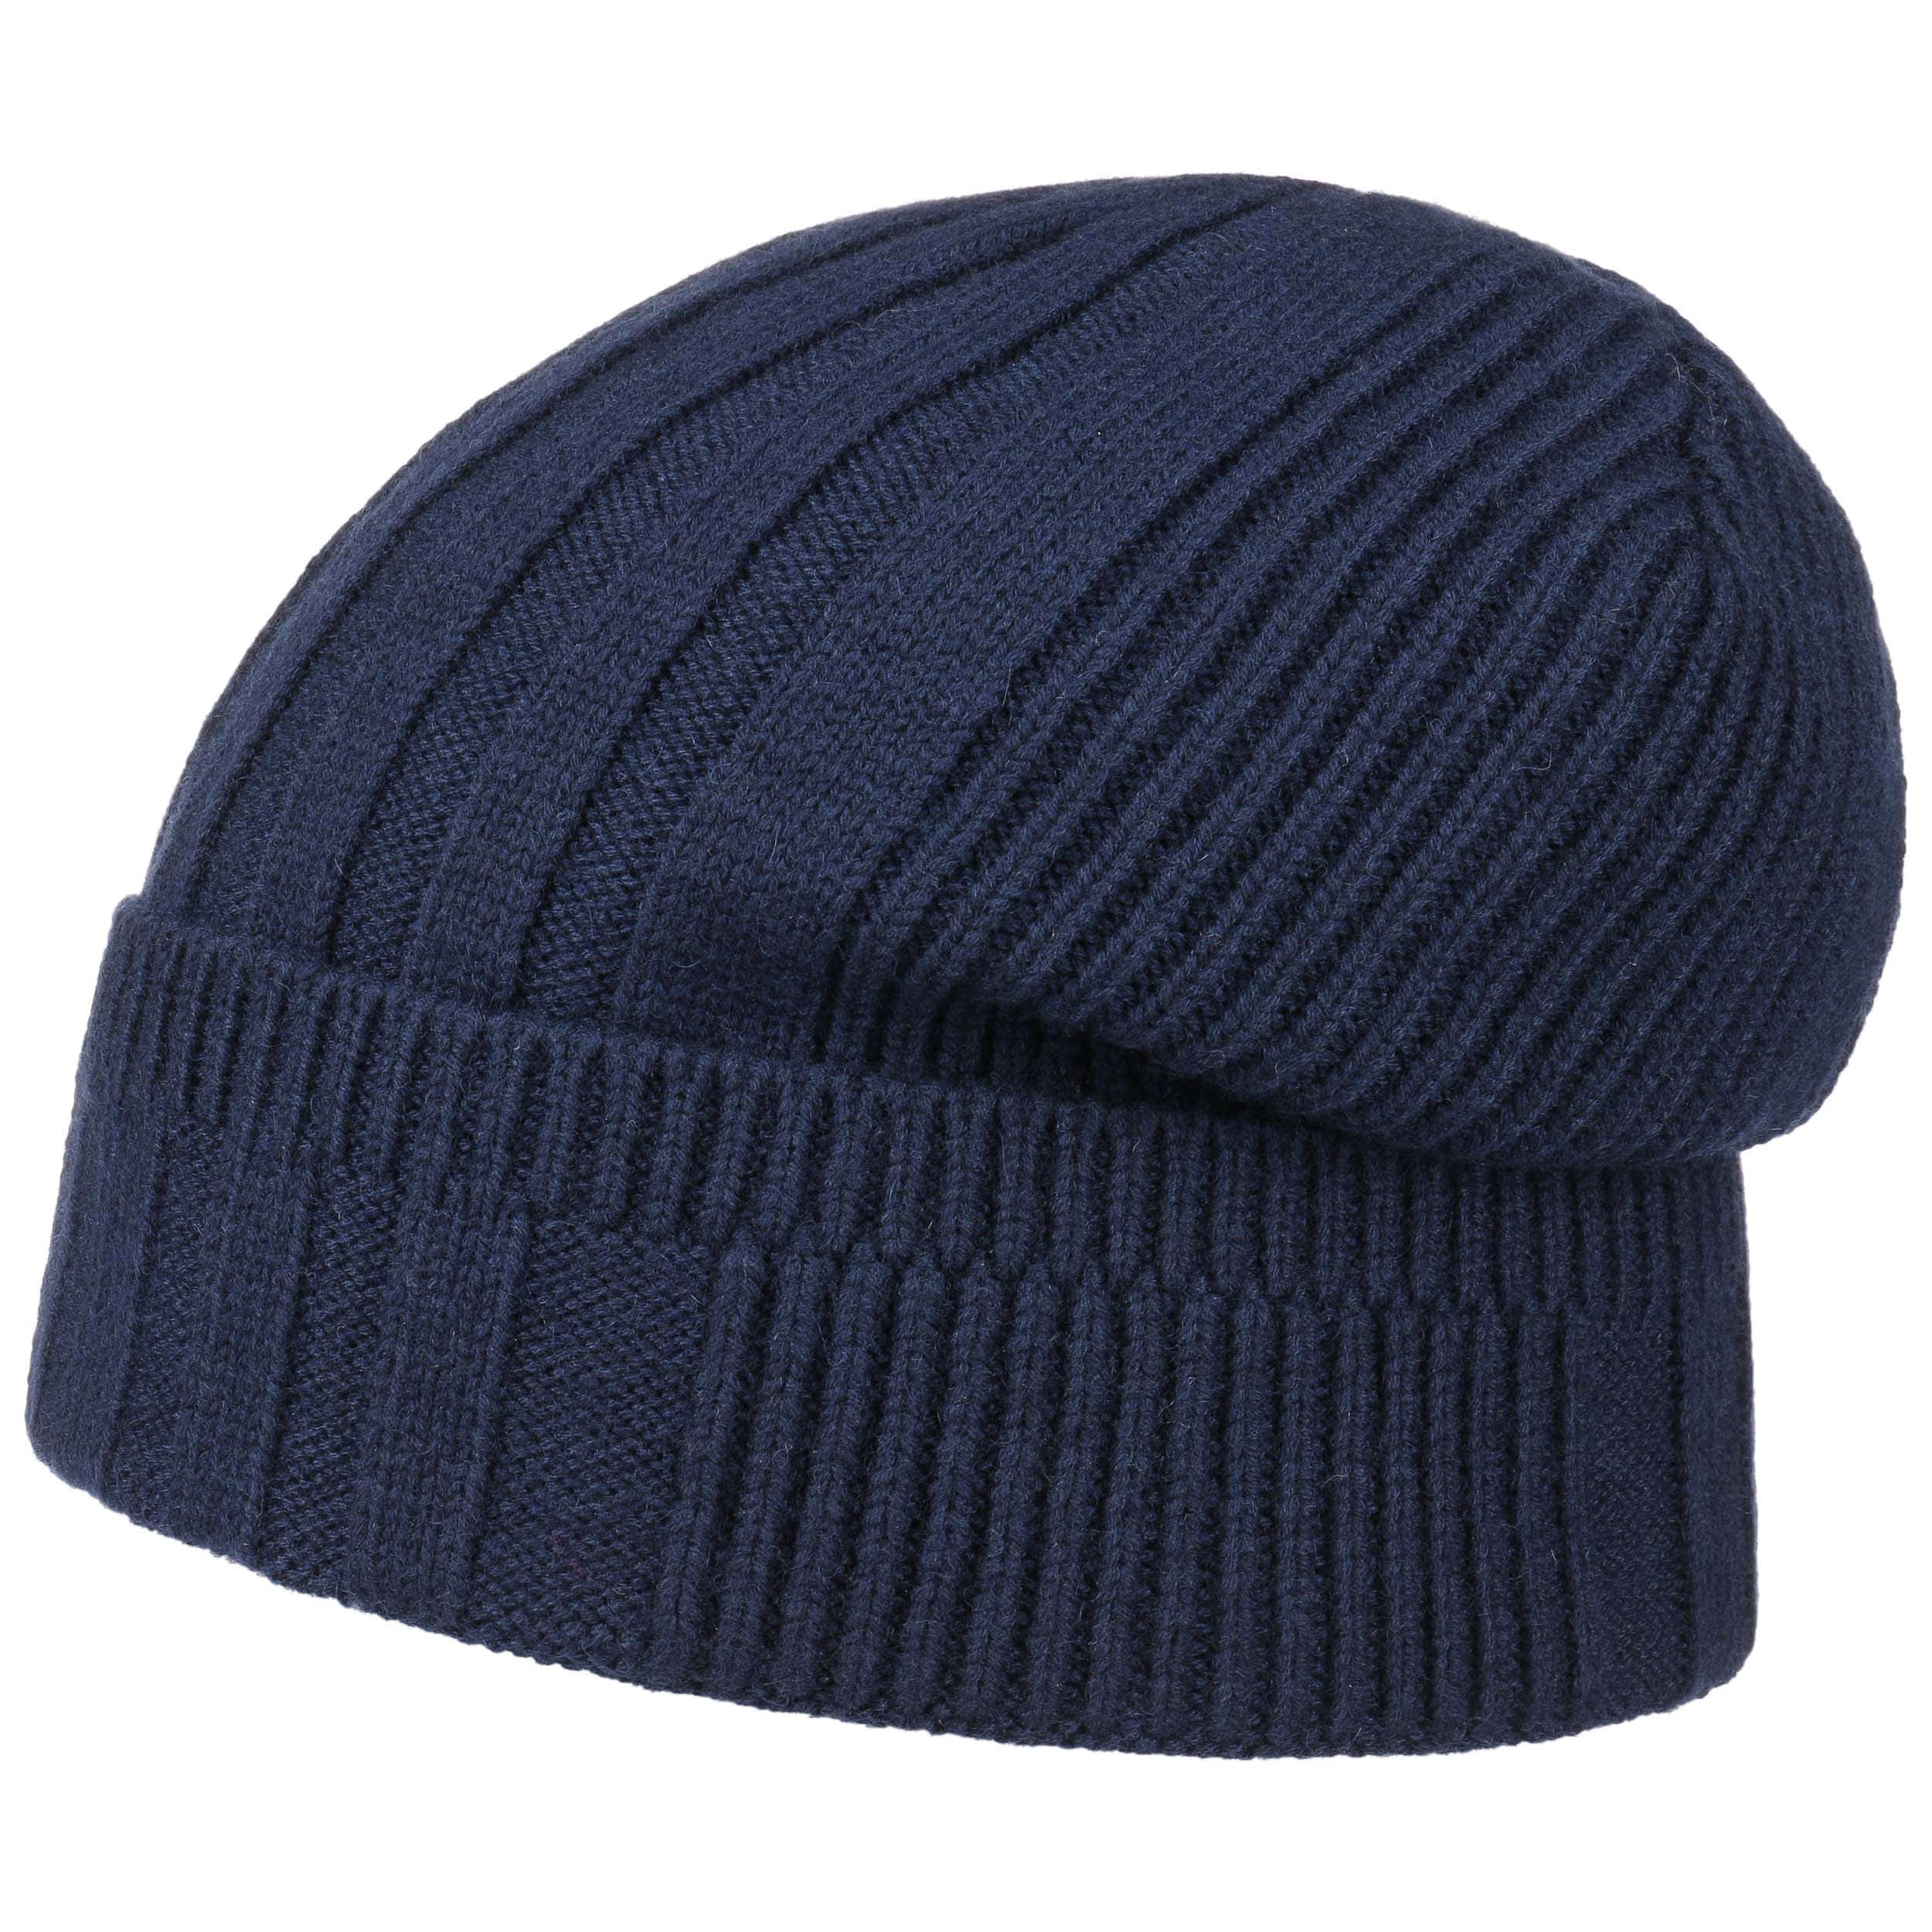 c411ab46006 ... Knit Mix Beanie with Cuff by UGG - blue 3 ...